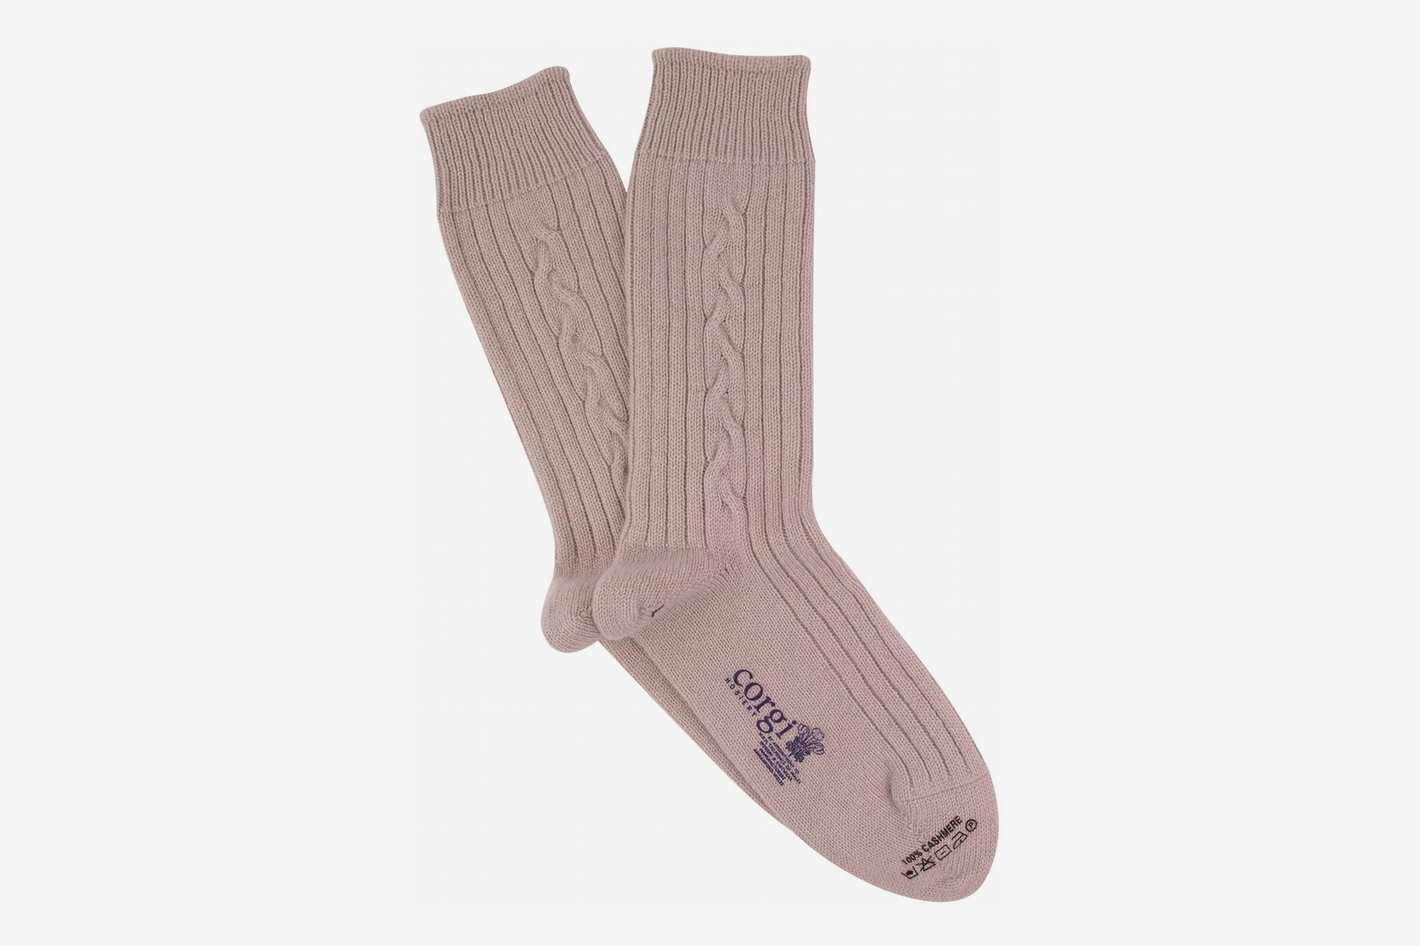 Corgi Men's Luxury Hand Knitted Cable Pure Cashmere Socks